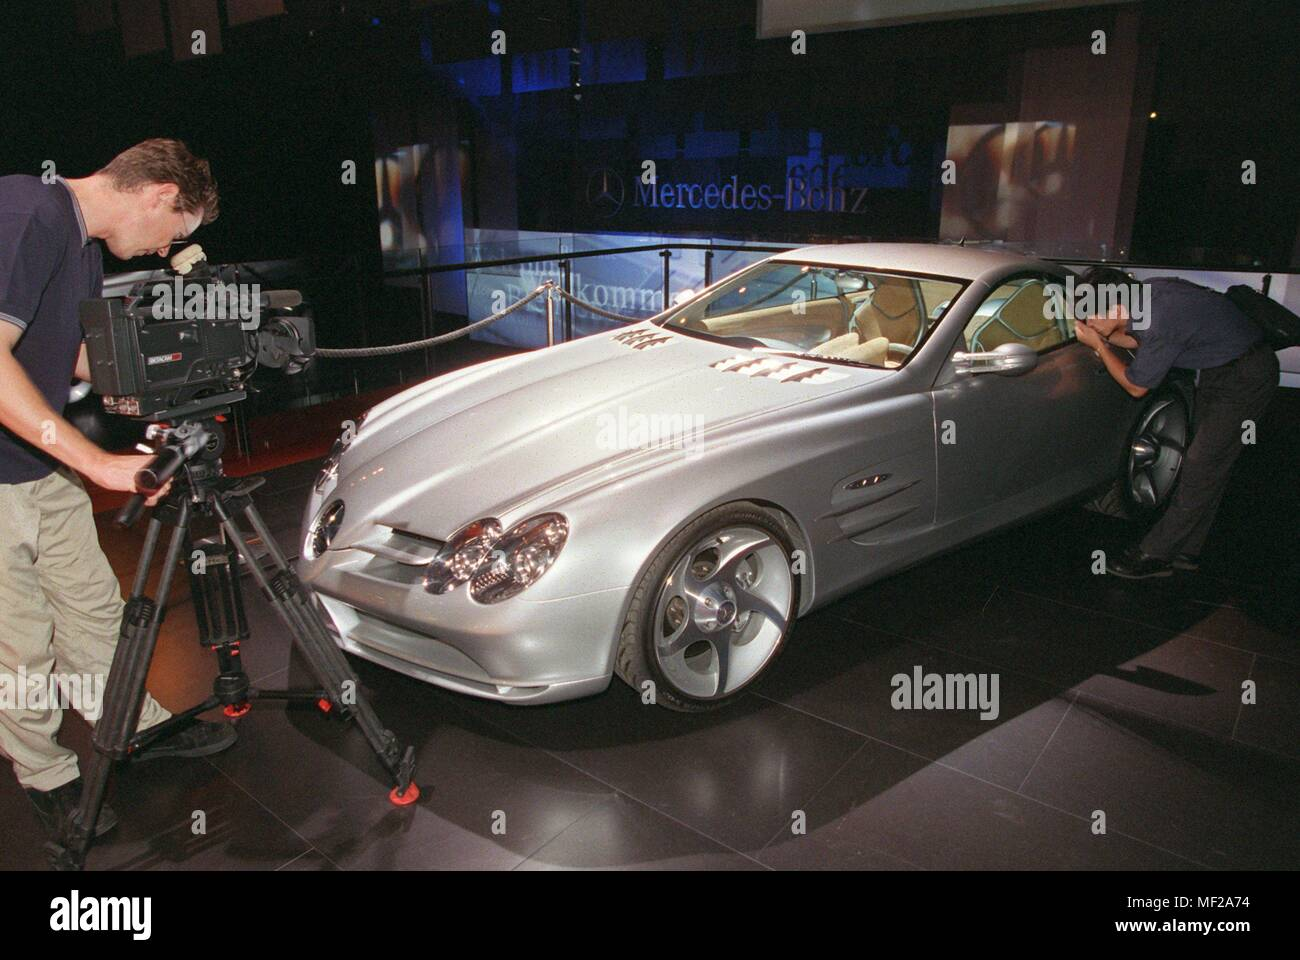 Mercedes presents the coupe version of the super sports car Vision SLR at the International Motor Show (IAA) in Frankfurt on 14.9.1999. He has the conspicuous, elongated bonnet, flared fender and Flugelturen. The Roadster is more than a 'show car', he gives a realistic taste of tomorrow's Mercedes-Benz sports car, said Professor Jurgen Hubbert, management member of DaimlerChrysler at the presentation of the study. The futuristic roadster is powered by a V8 engine with 410 kW/557 hp. Dawith is said to accelerate the car to 100 km/h in 4.2 seconds and reach a top speed of 320 km/h. | usage - Stock Image